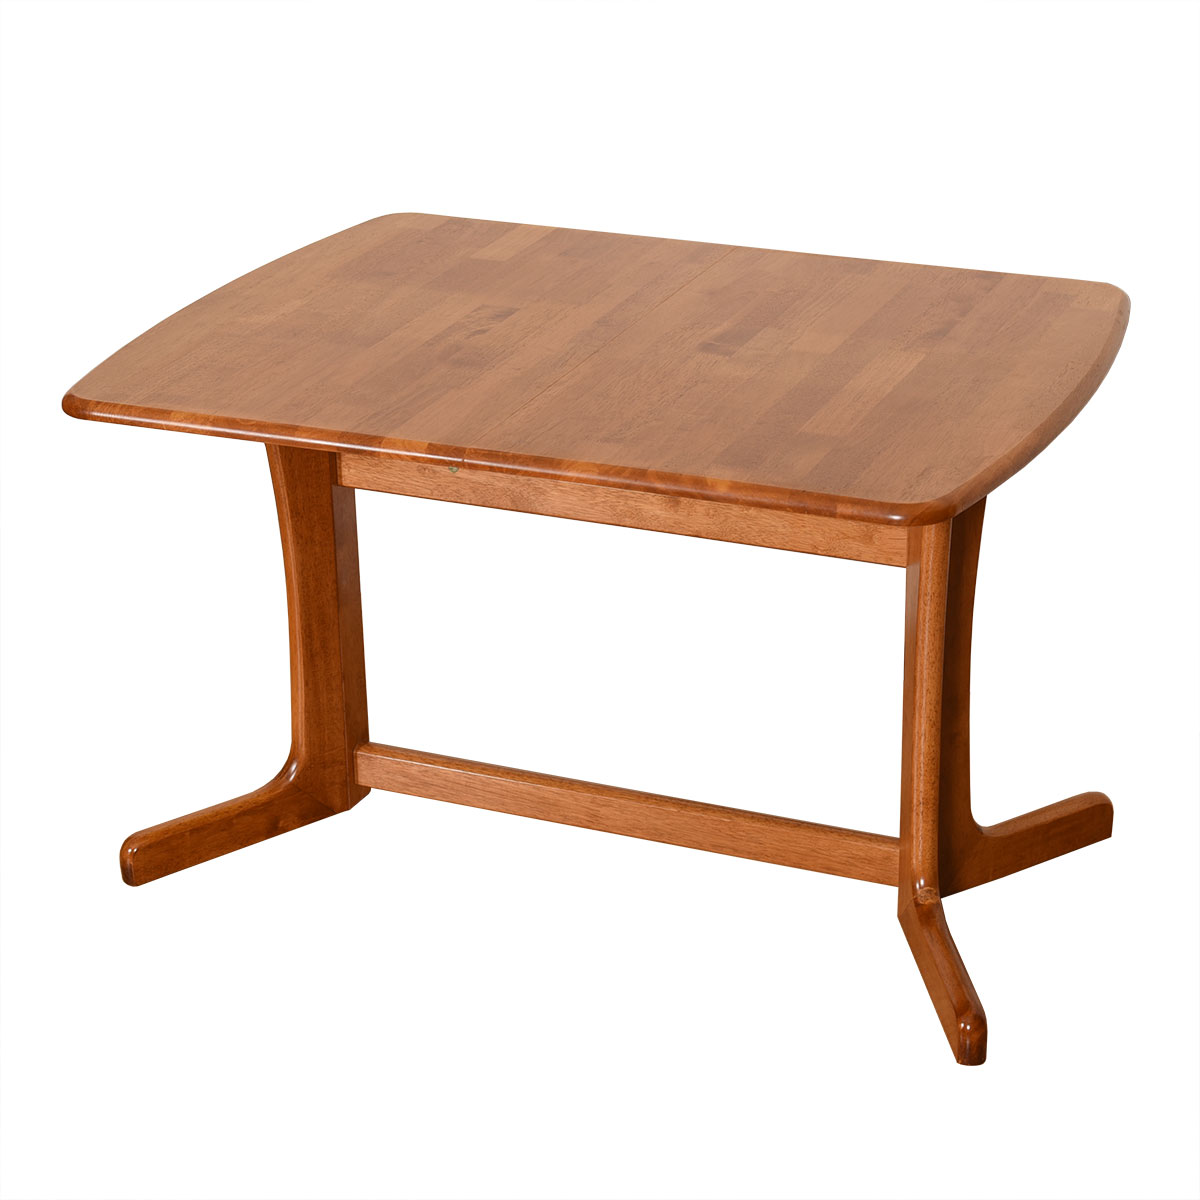 Apartment Sized Danish Teak Expanding Dining Table w/ Butterfly Leaf